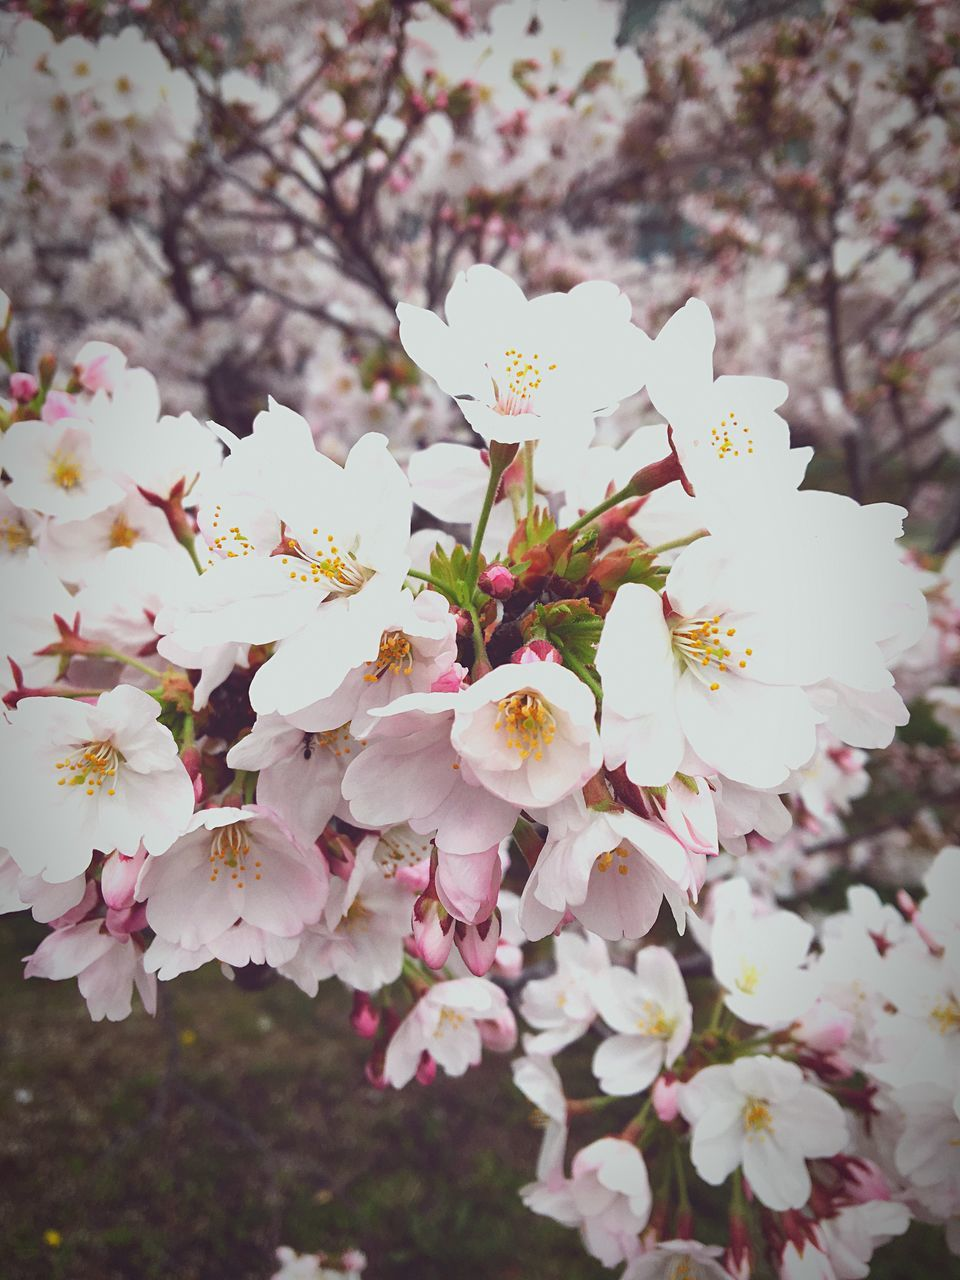 flower, beauty in nature, nature, blossom, tree, fragility, growth, springtime, white color, freshness, petal, apple blossom, branch, no people, pink color, outdoors, day, blooming, close-up, flower head, sky